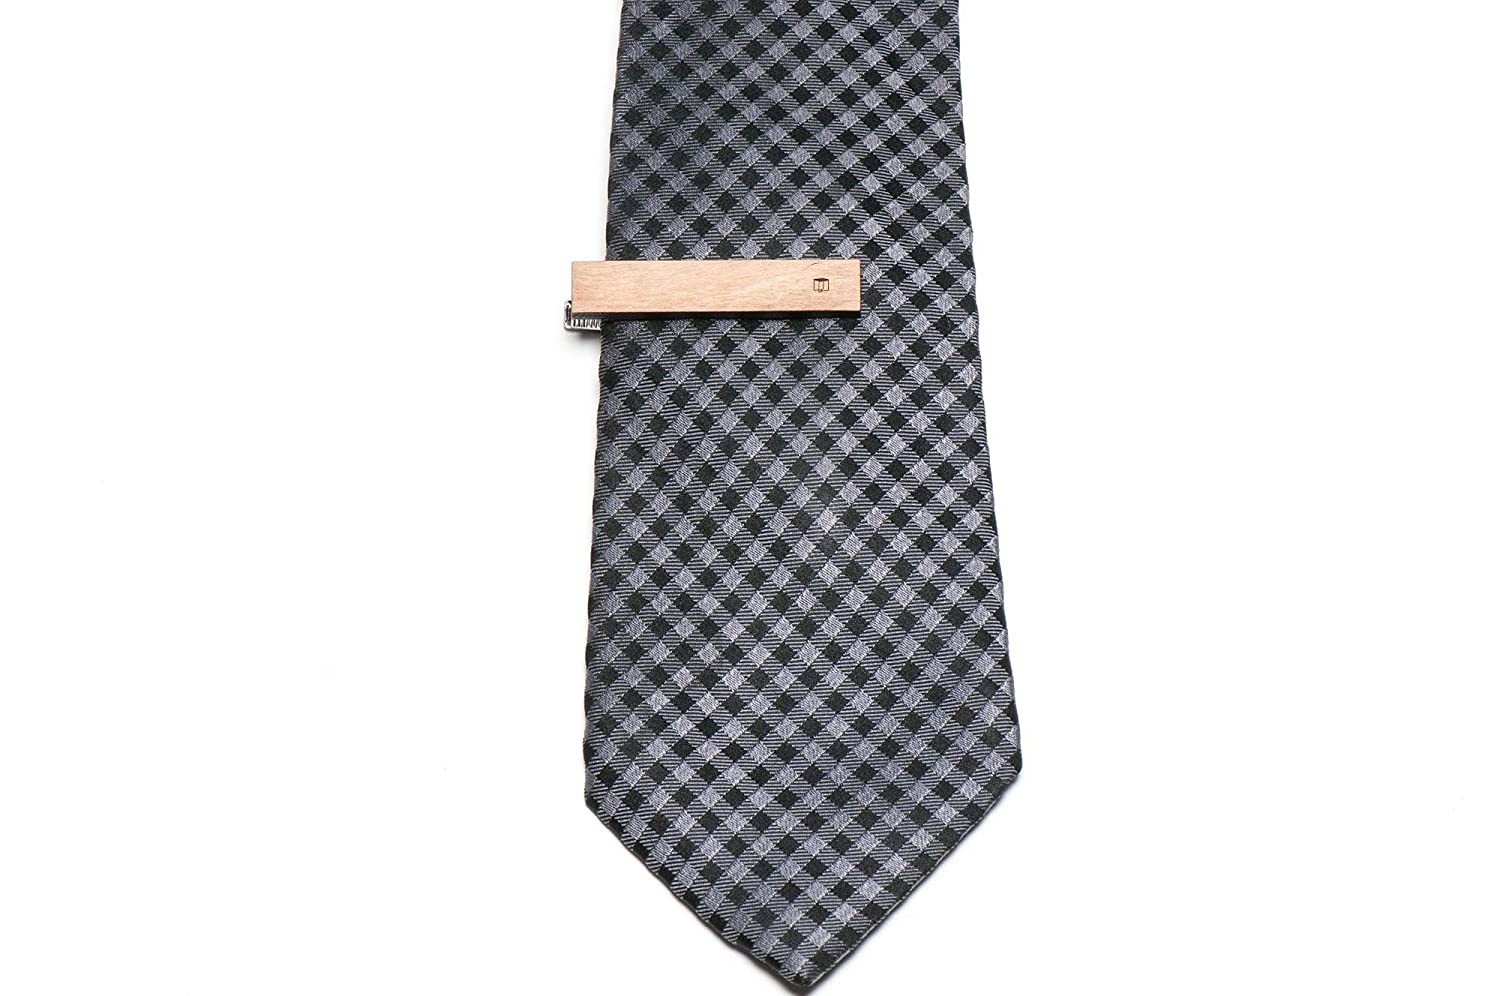 Wooden Accessories Company Wooden Tie Clips with Laser Engraved Steel Stool Design Cherry Wood Tie Bar Engraved in The USA